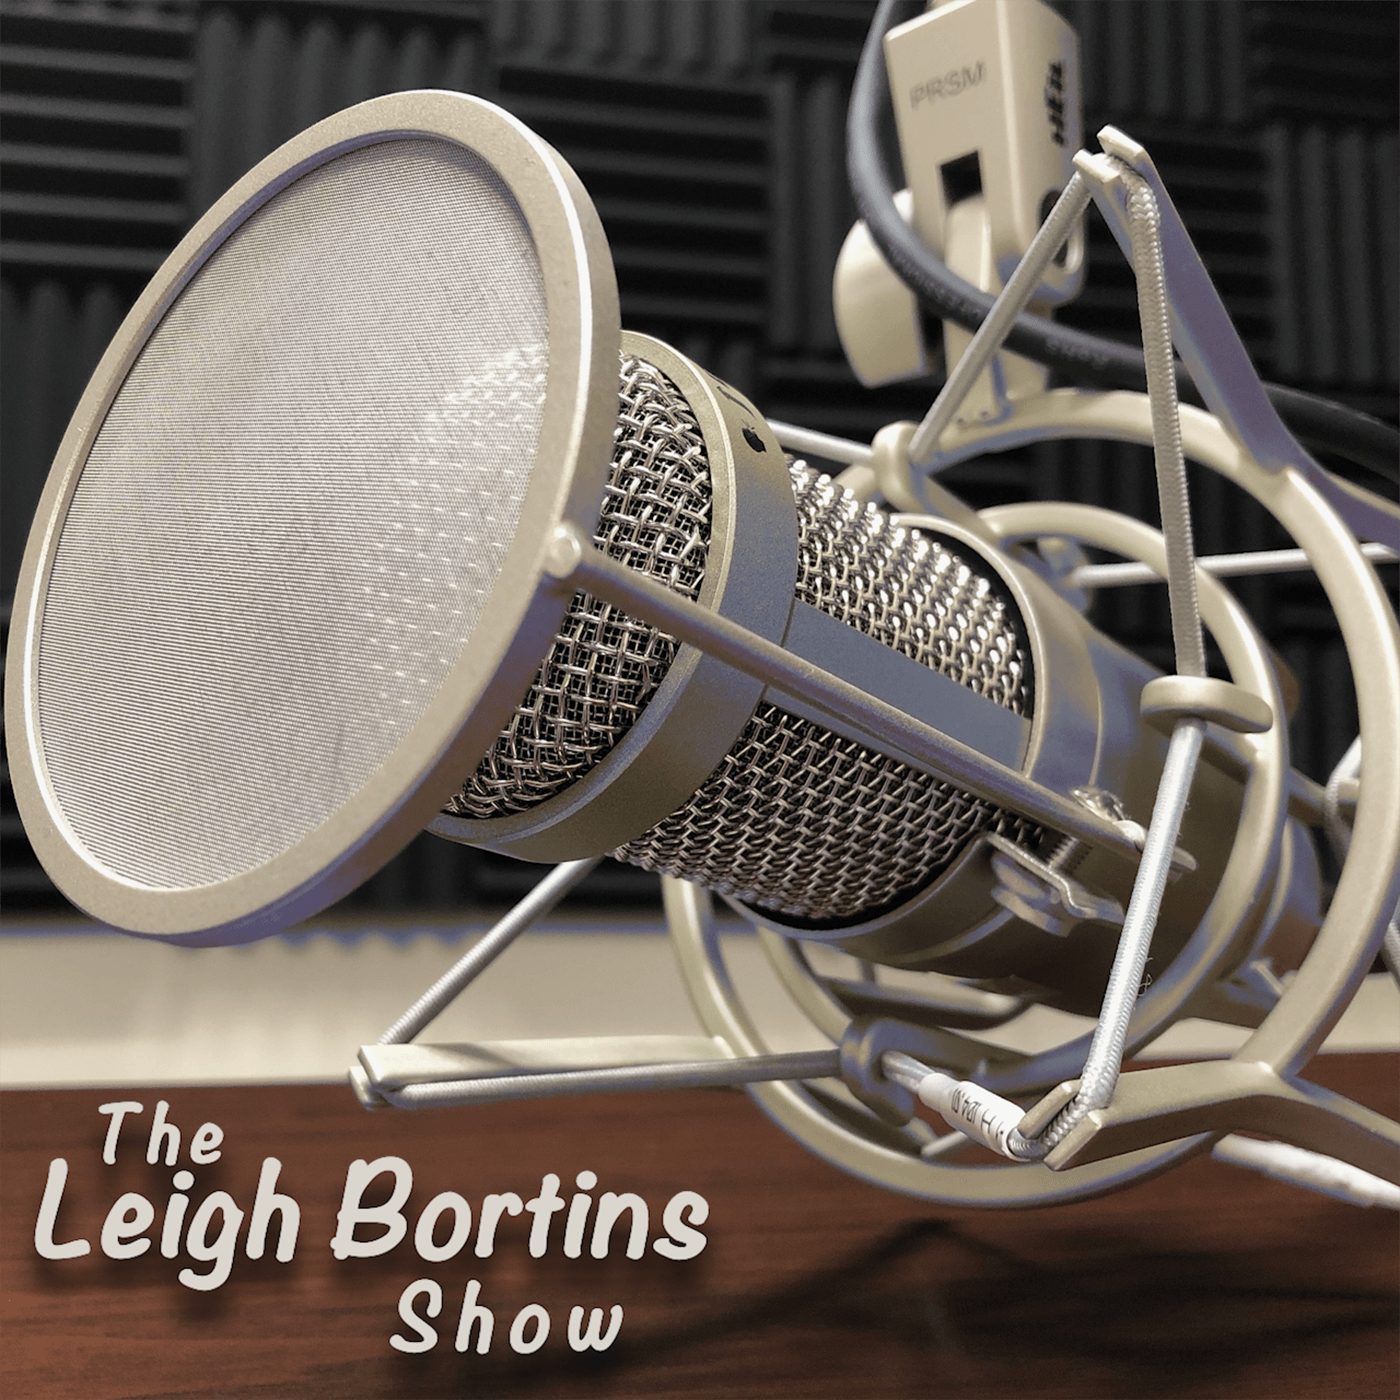 The Leigh Bortins Show